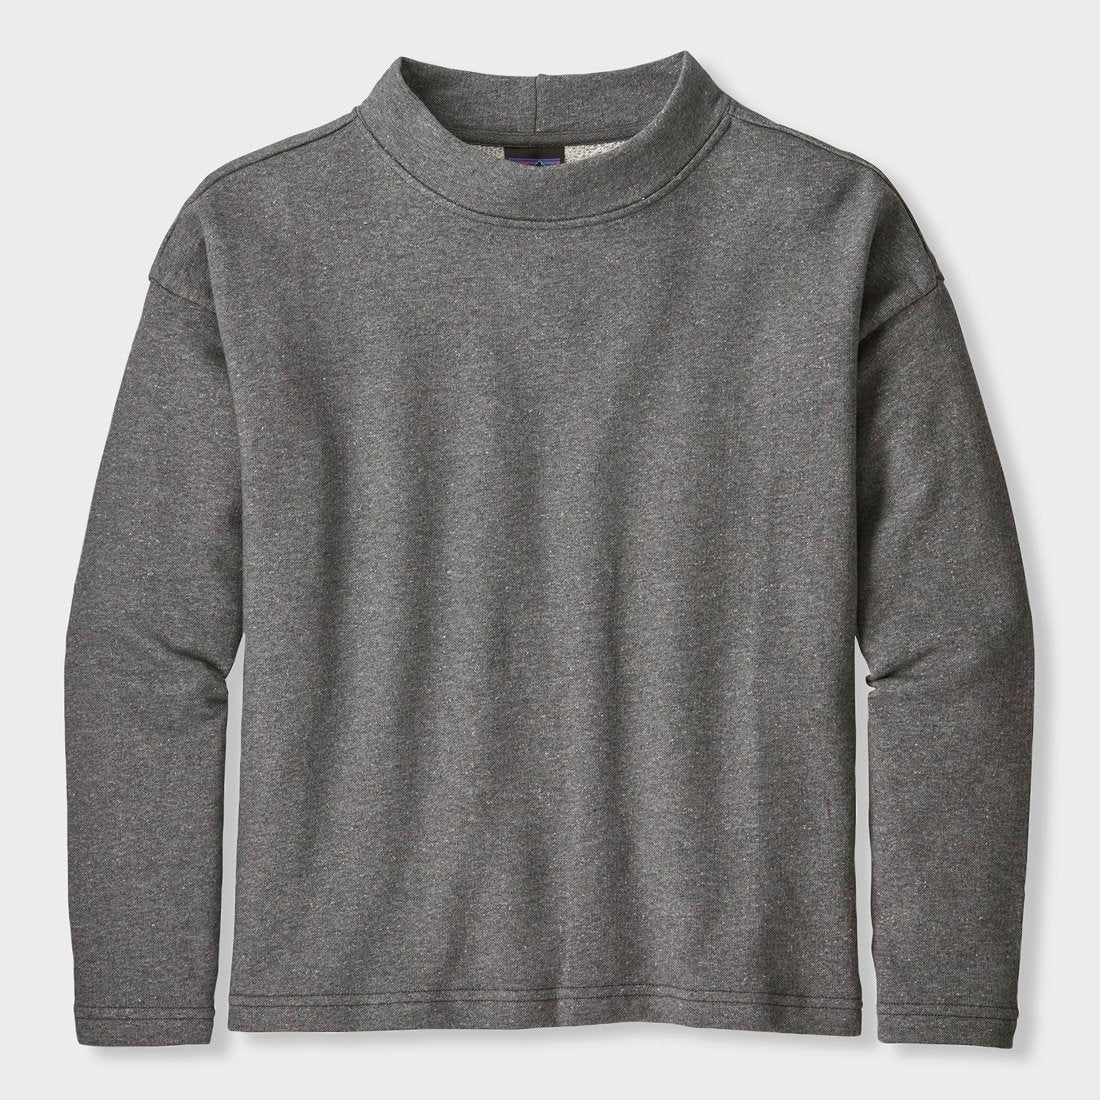 Patagonia Women's Mount Sterling Fleece Forge Grey